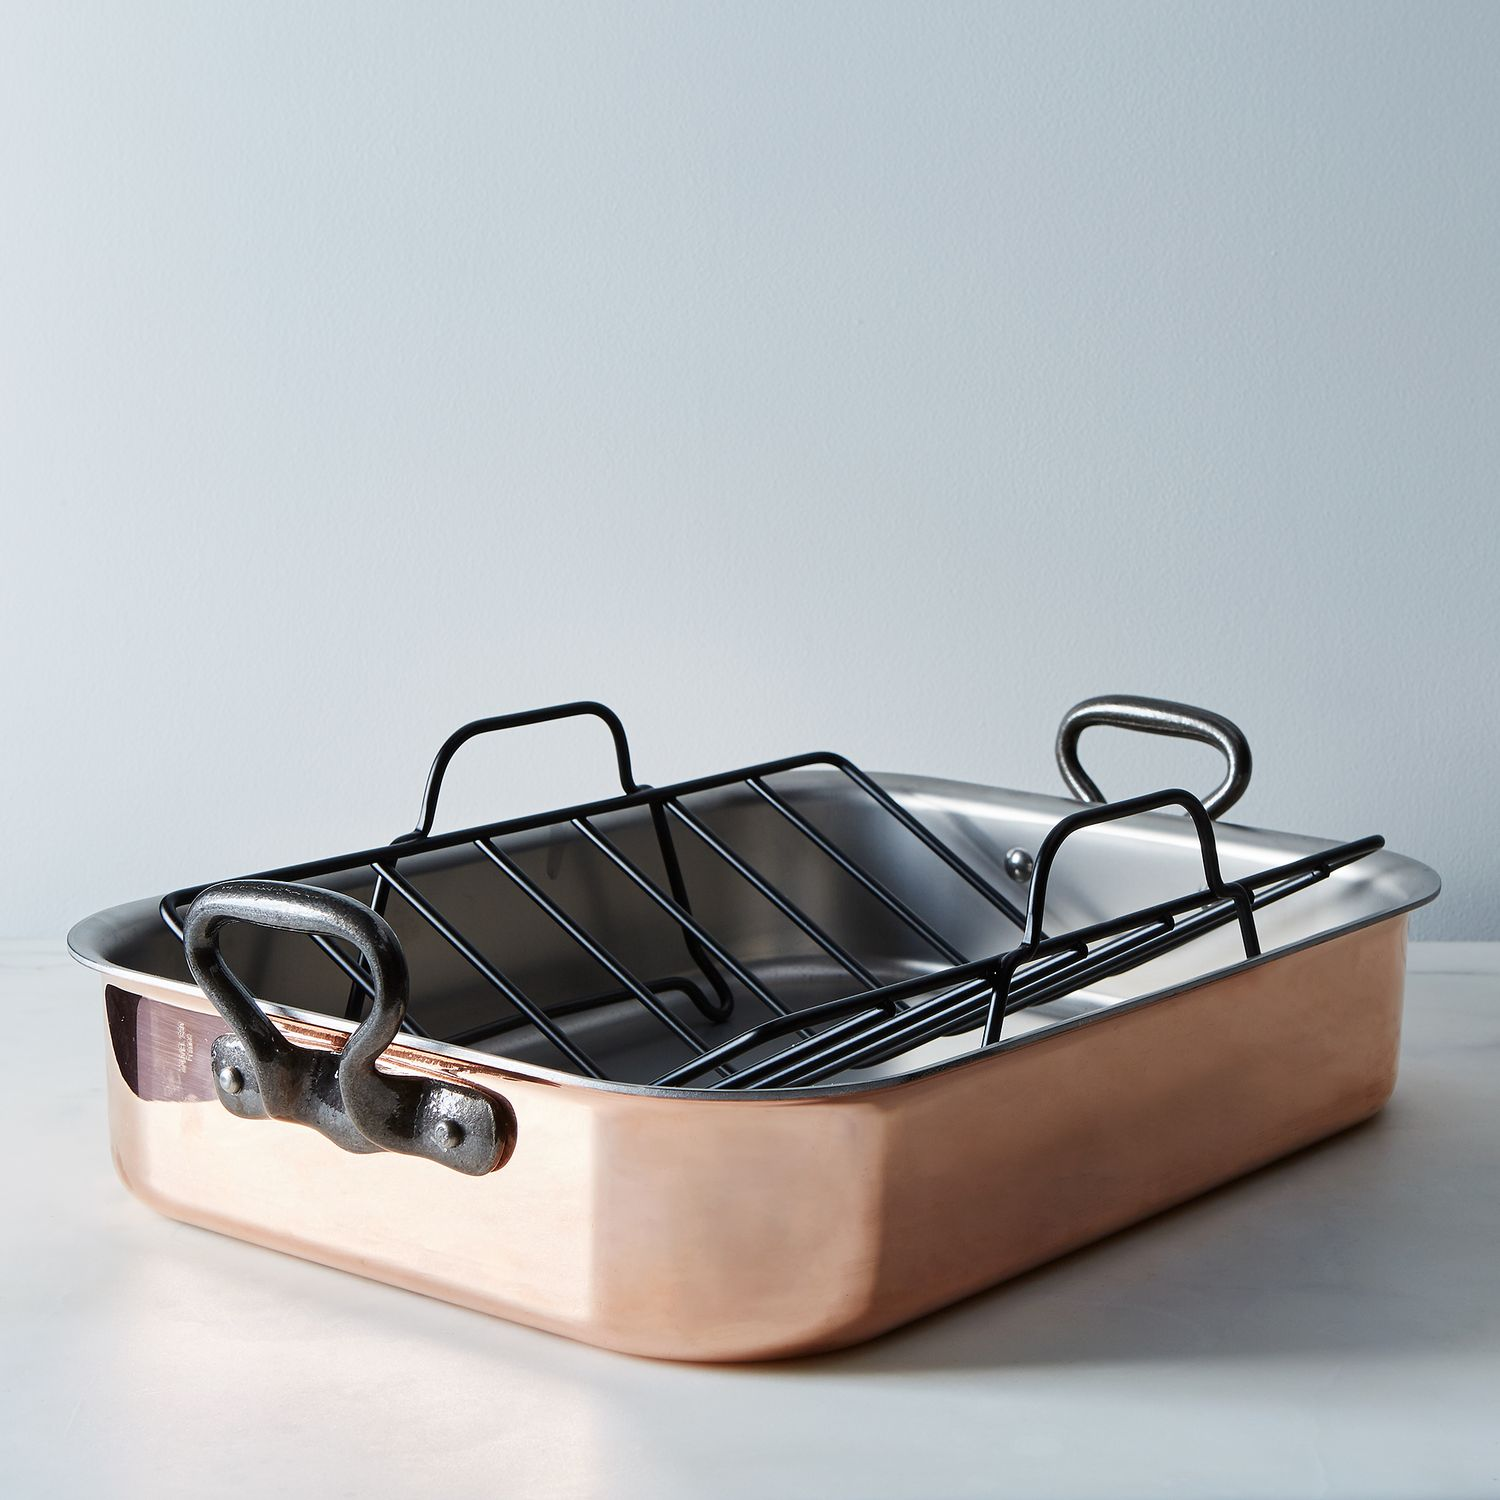 Big W Dish Rack Mauviel Mhéritage Copper Roasting Pan With Rack On Food52